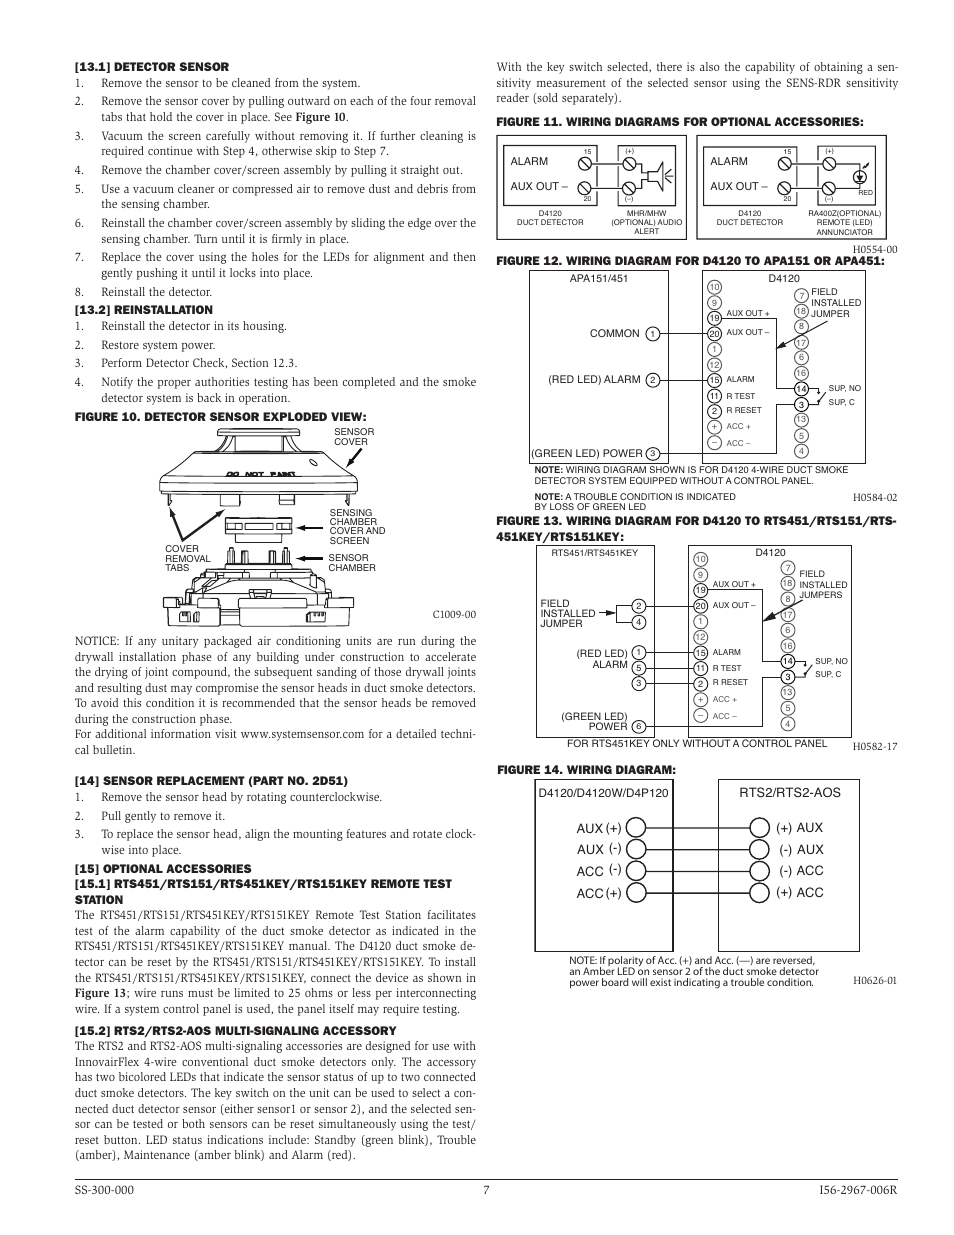 system sensor d4120 d4p120 and d4s page7 system sensor d4120, d4p120, and d4s user manual page 7 8 d4120 duct detector wiring diagram at alyssarenee.co